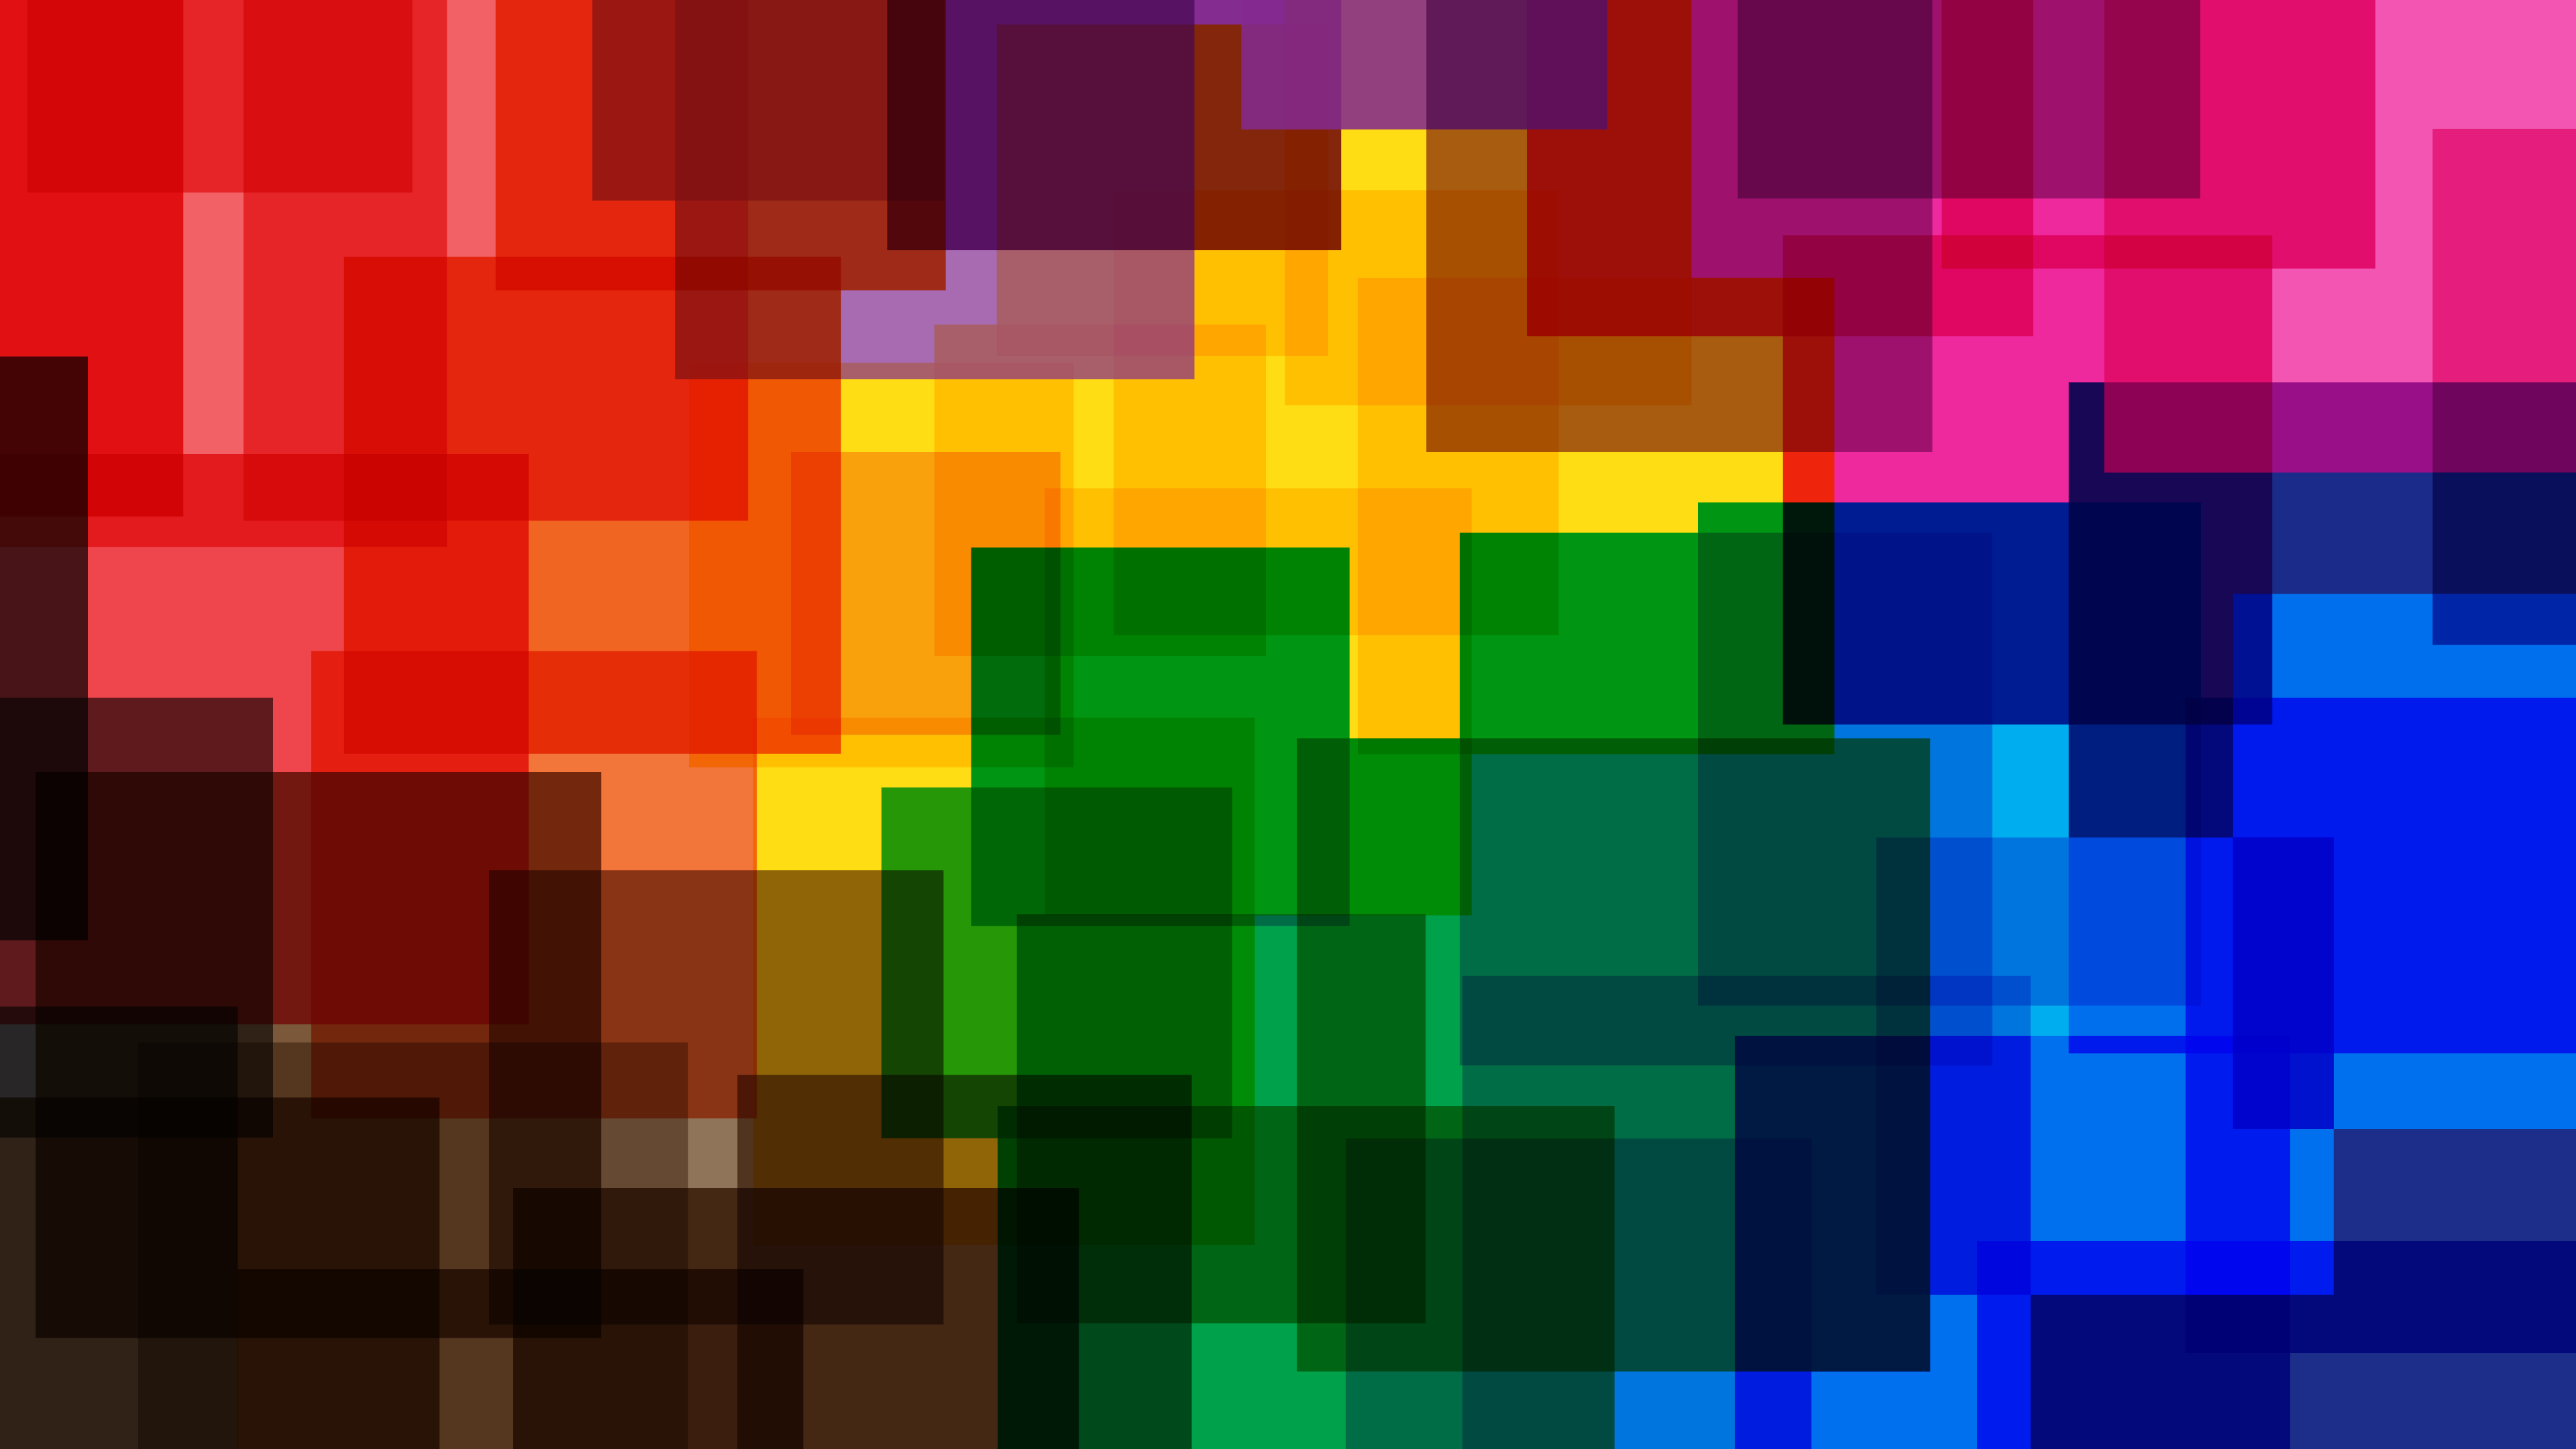 northalsted rainbow mosaic